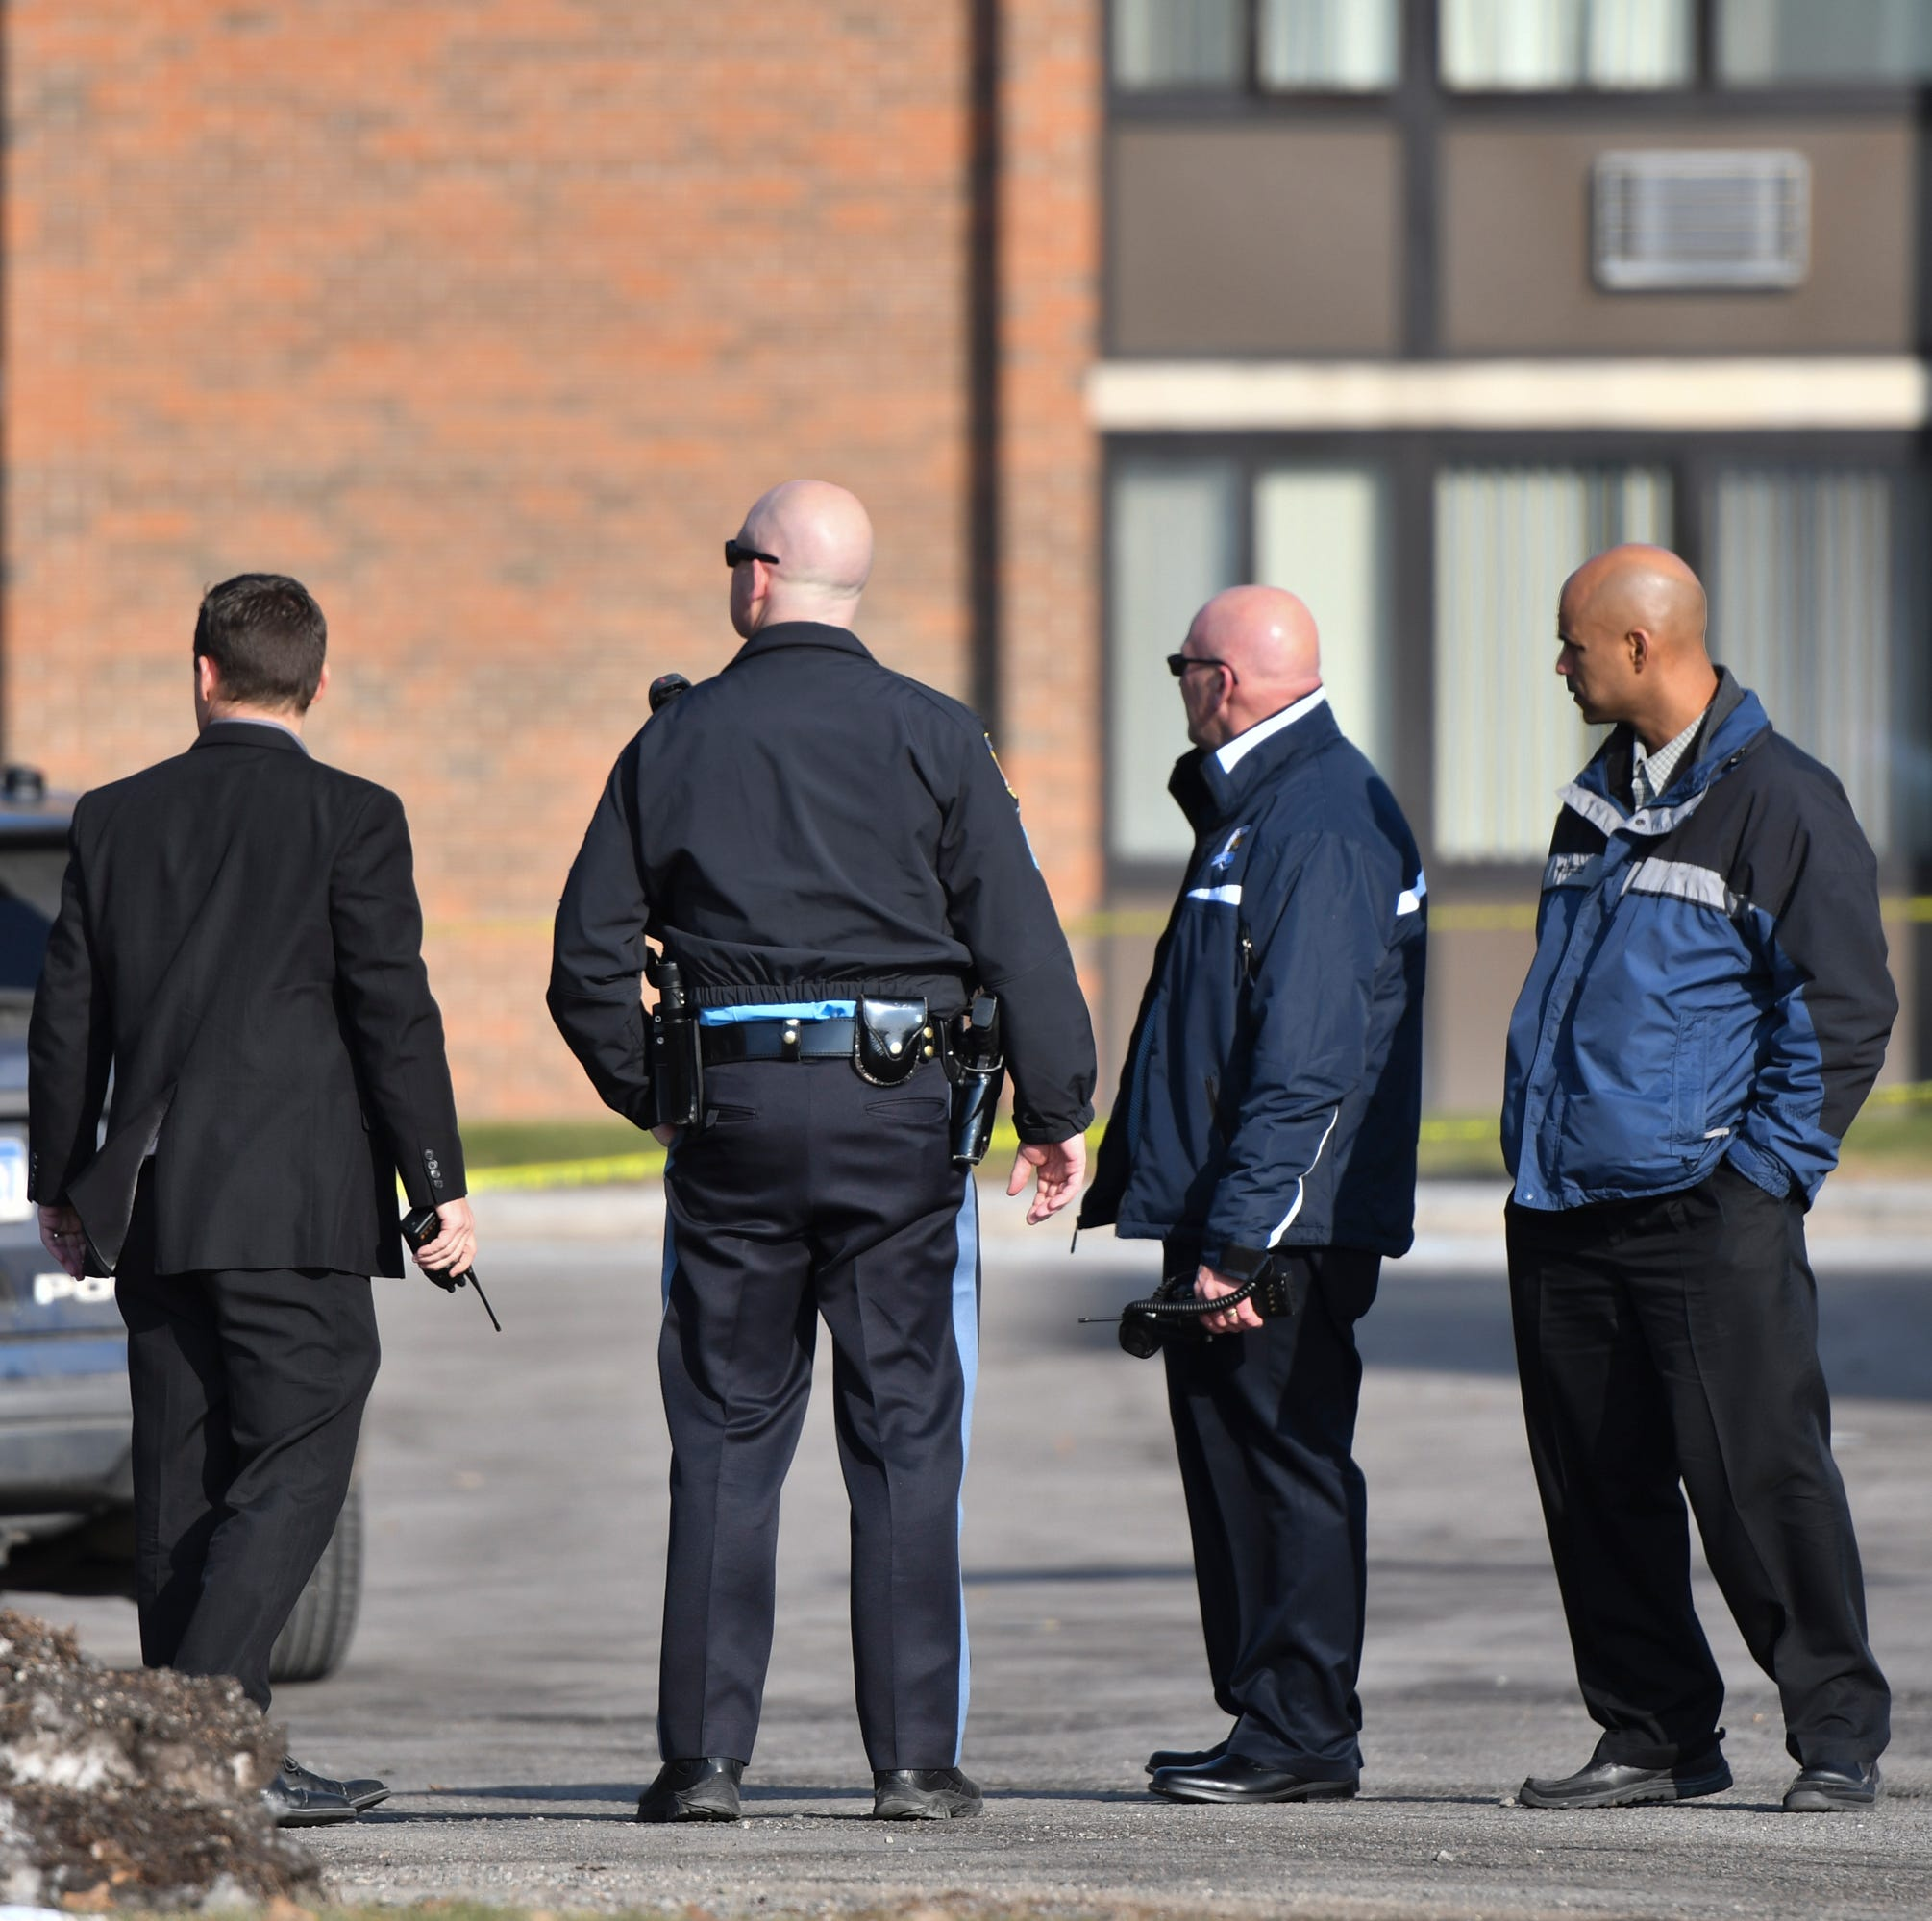 Police release name of man killed in shooting at public housing complex